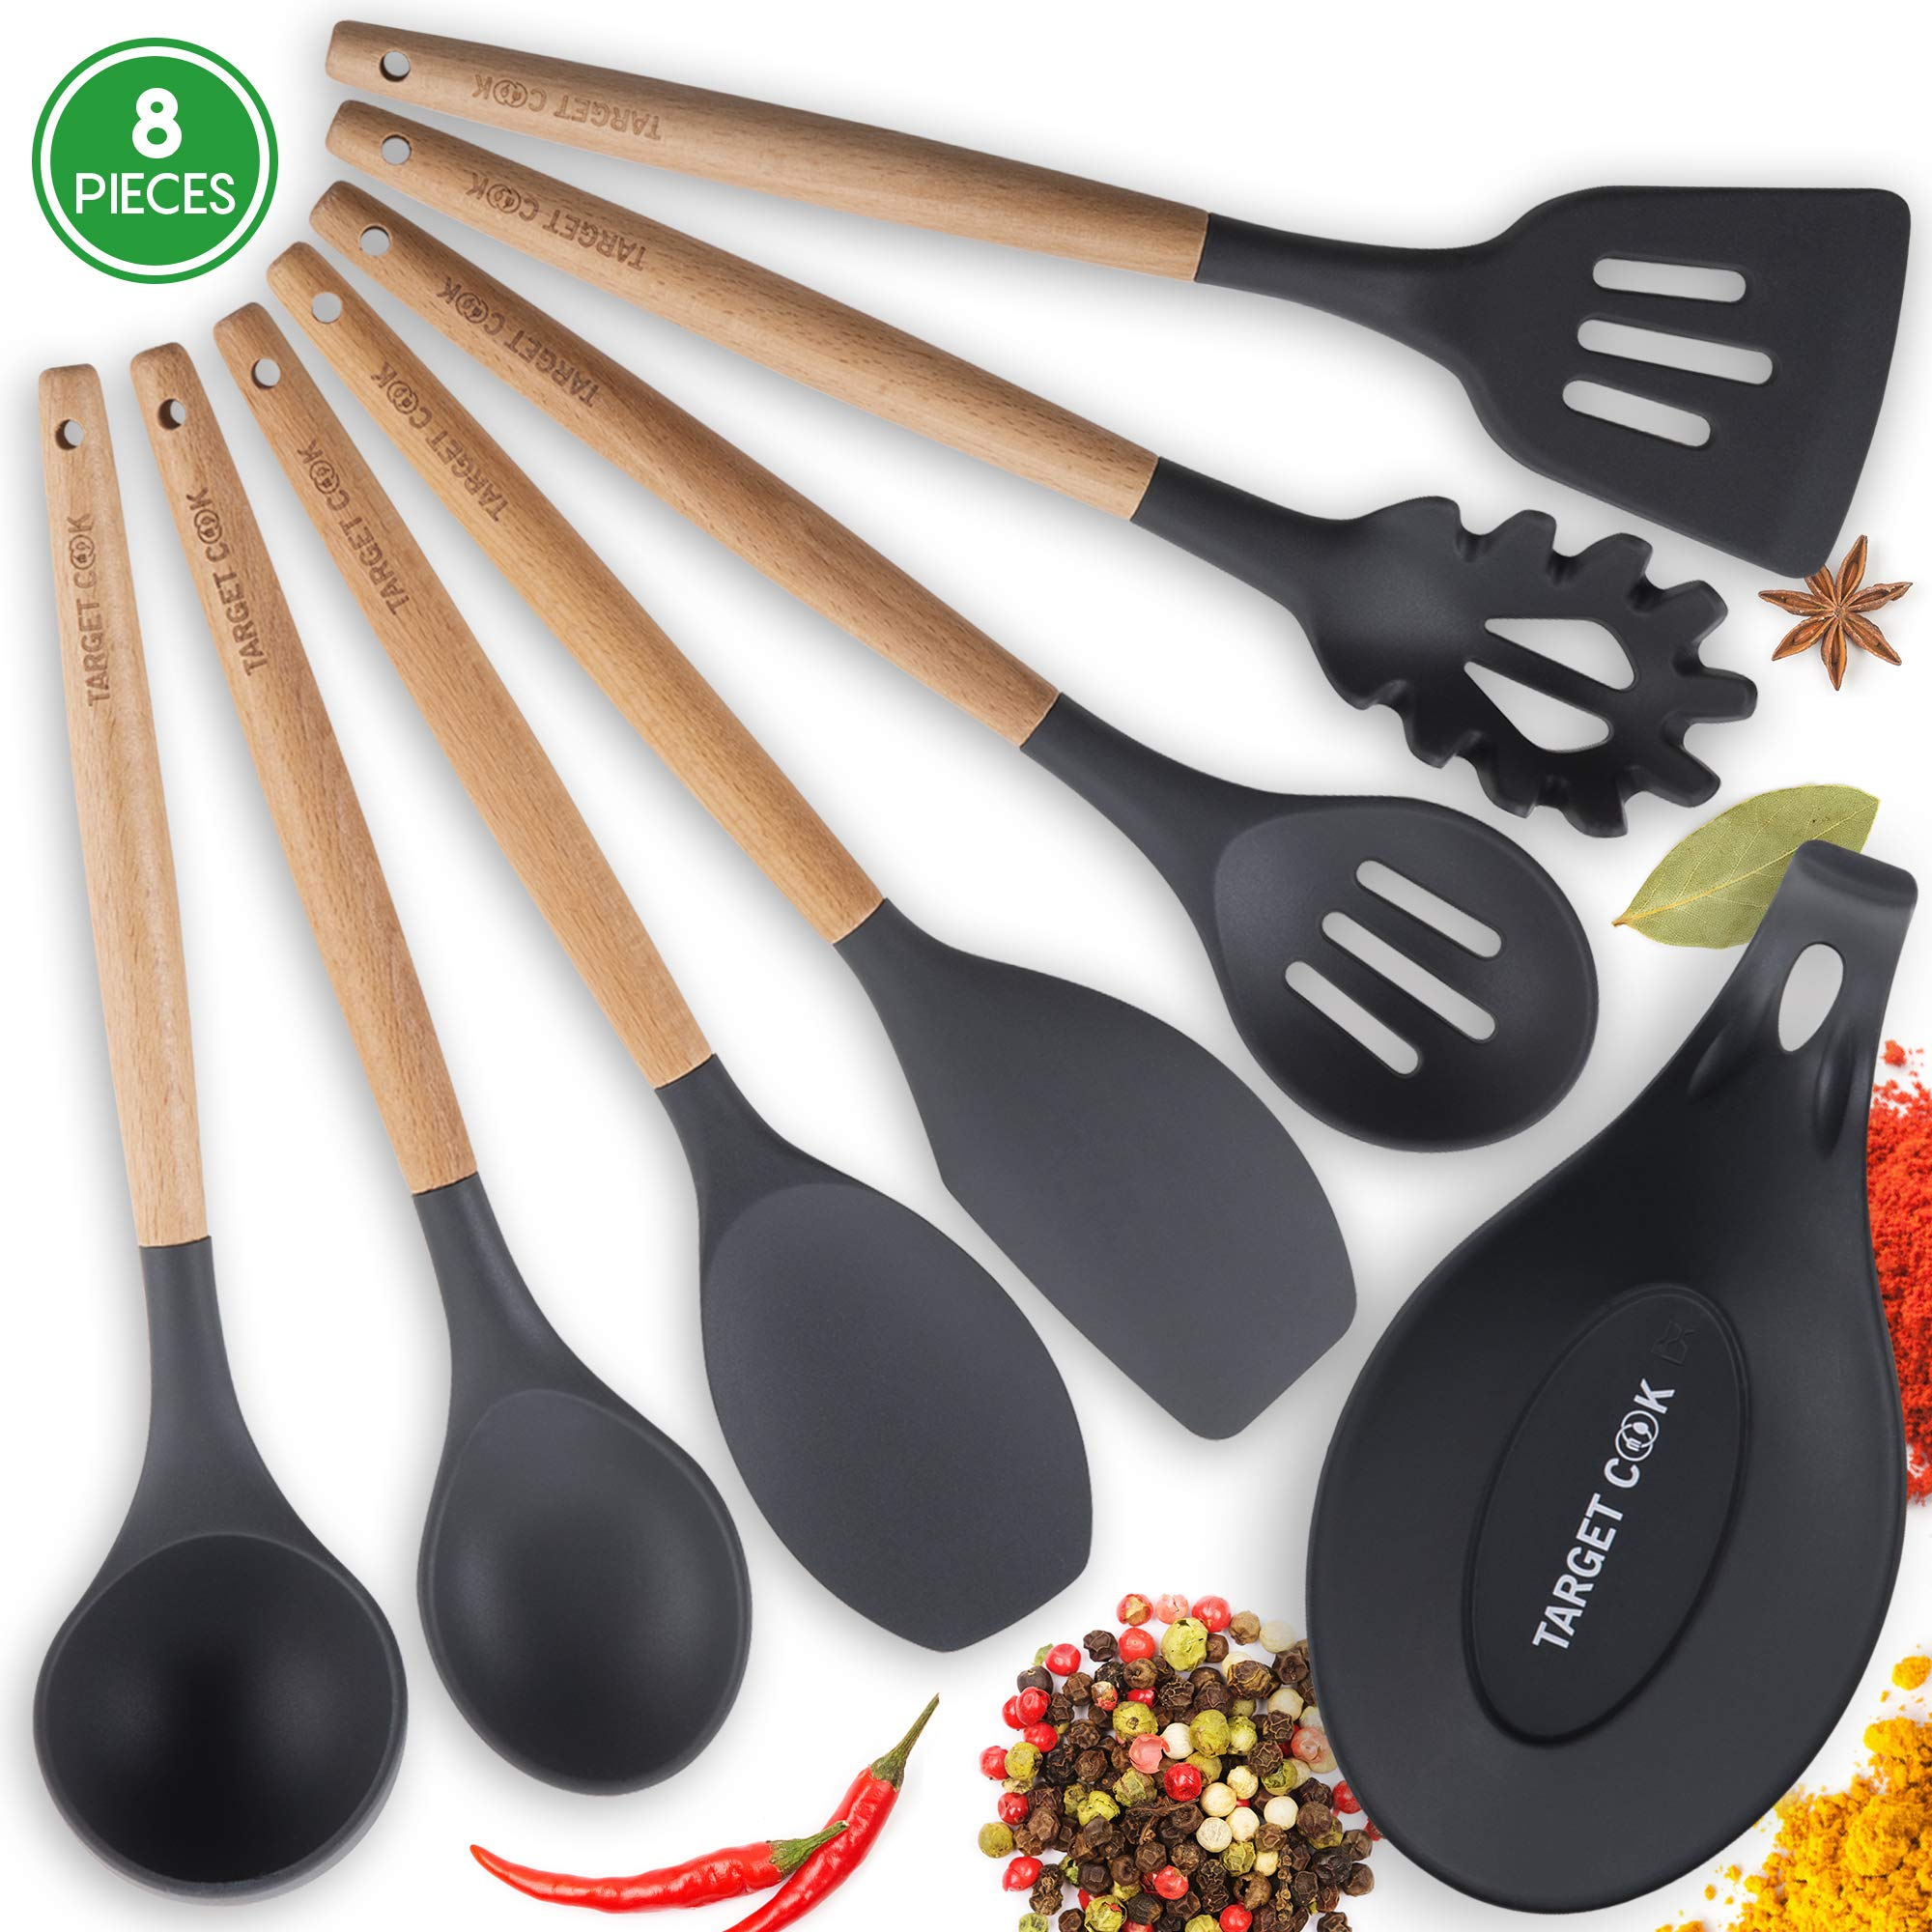 Kitchen Utensil Set - Silicone Cooking Utensils - Kitchen Accessories - Housewarming Gifts - Cooking Tools - Wooden Handle Cooking Spoons